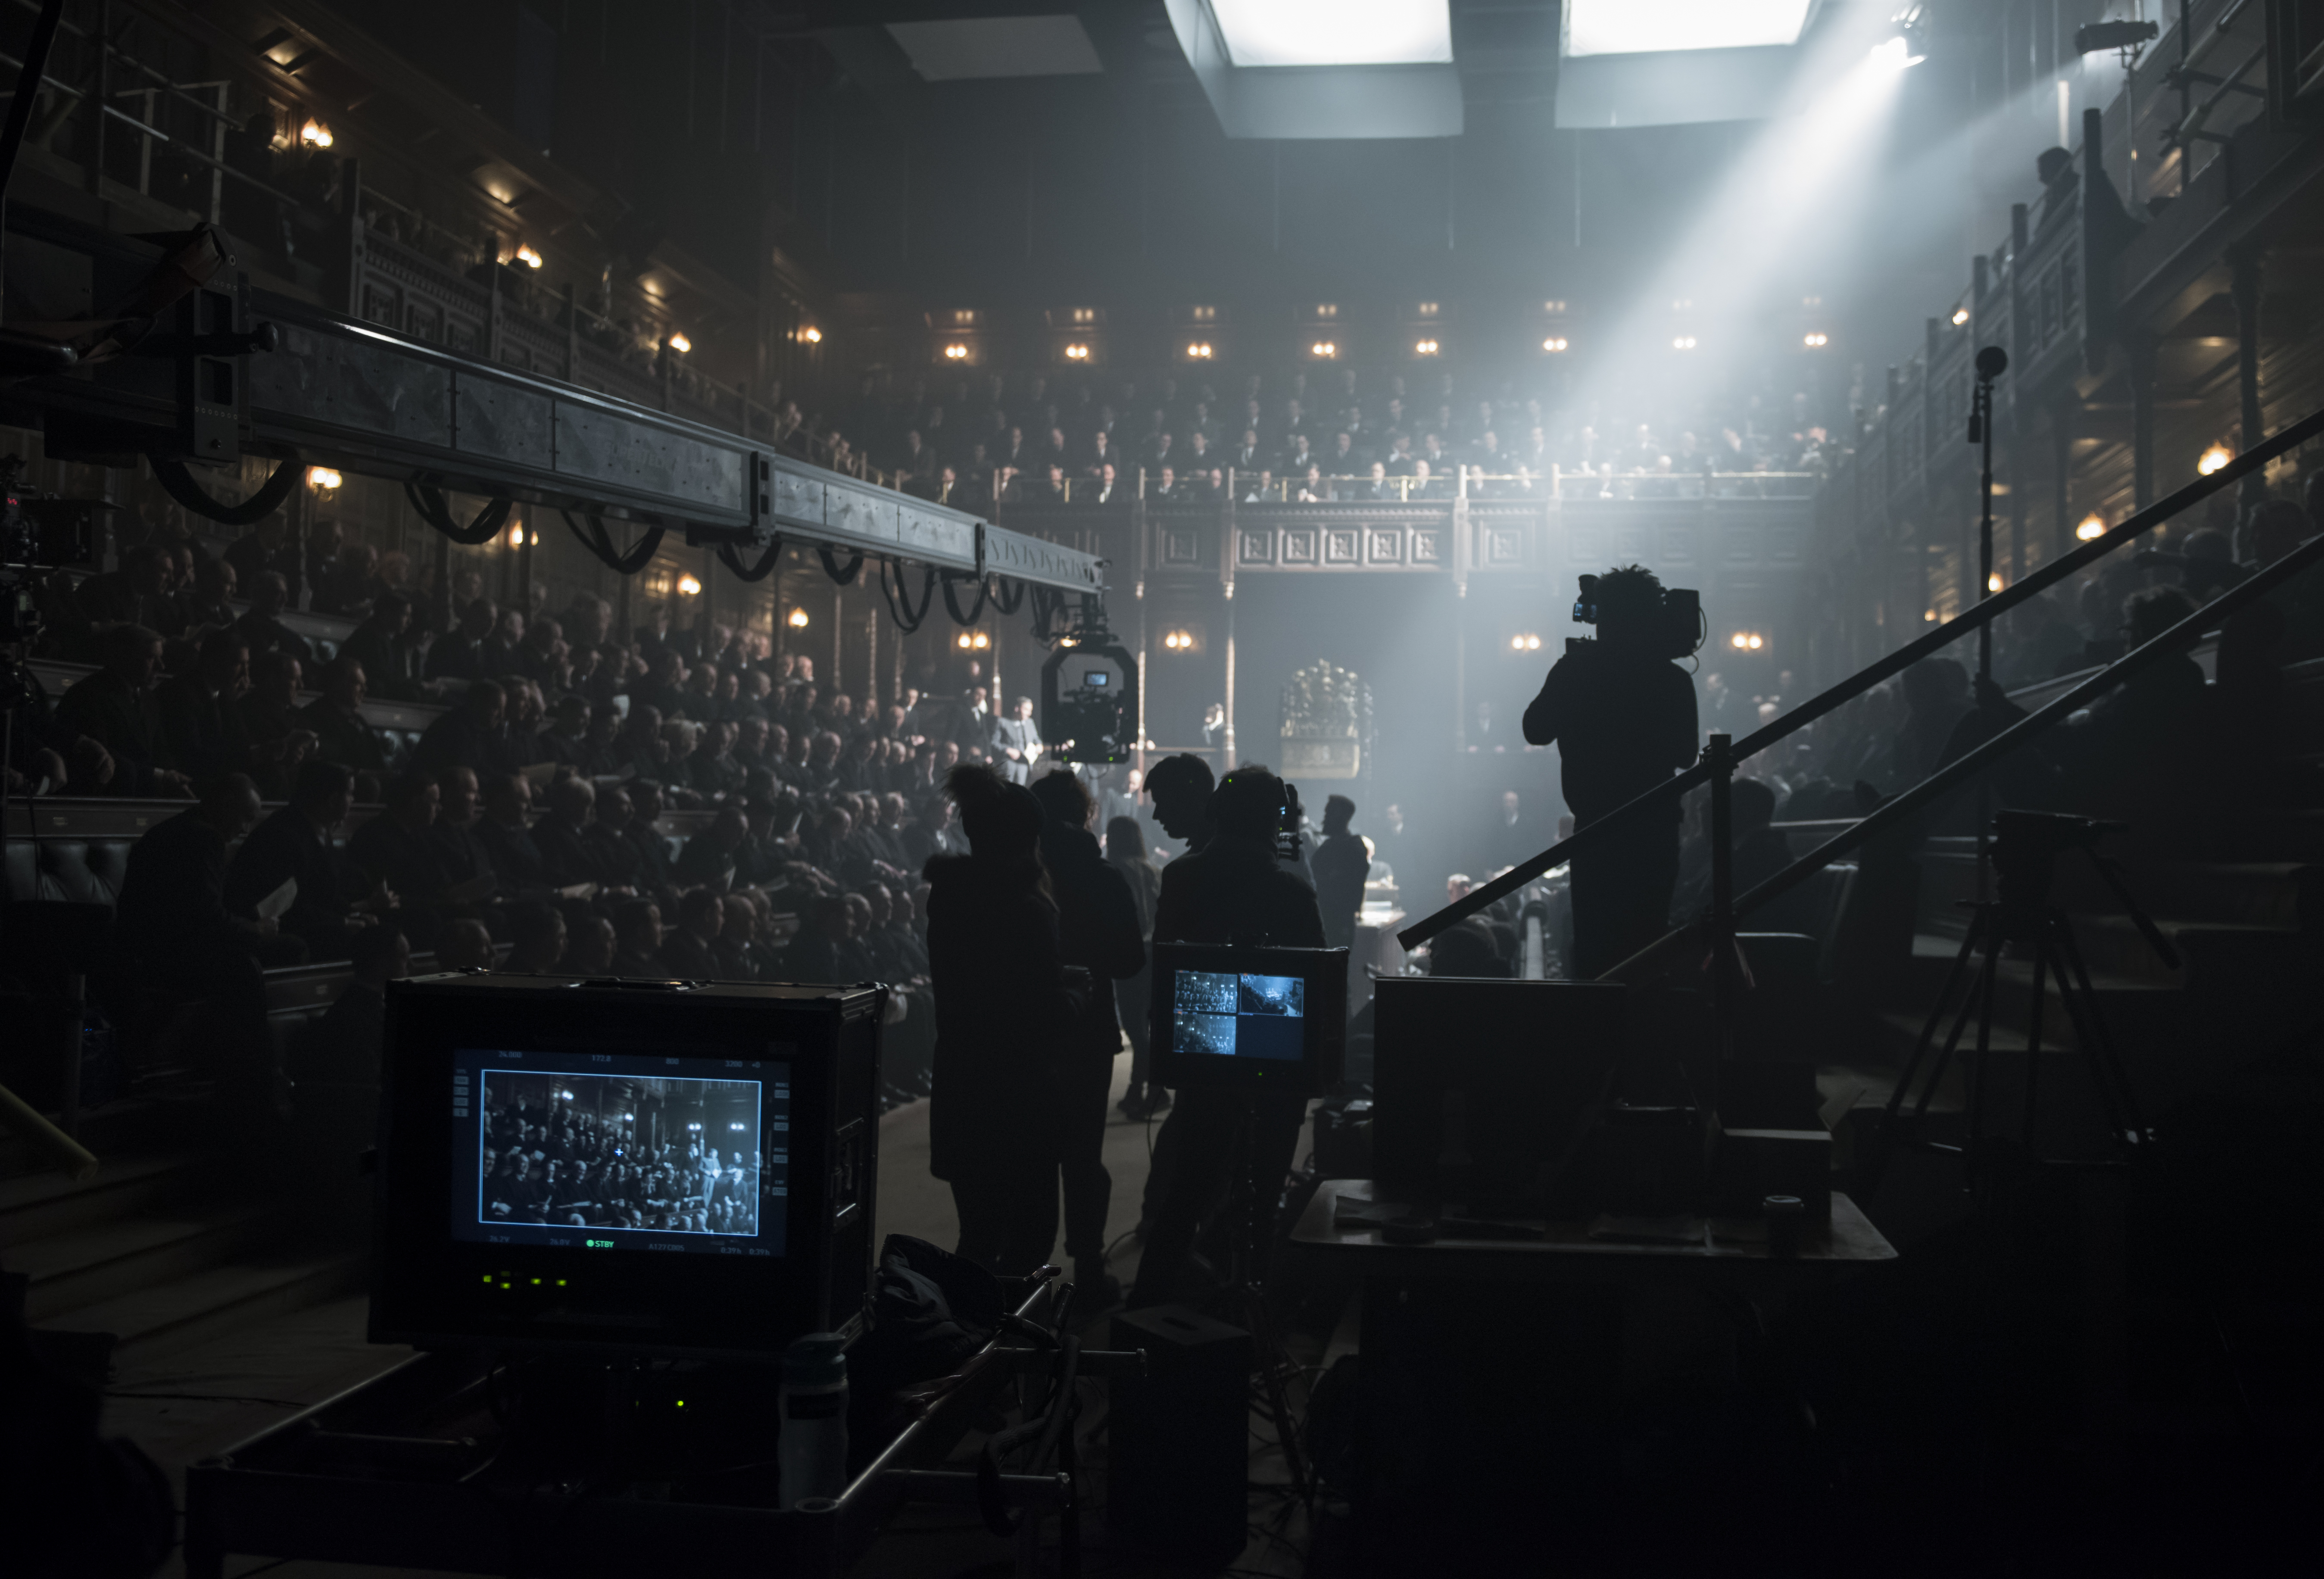 4106_D049_00321_CROPCast and crew filming on the set of director Joe Wright's DARKEST HOUR, a Focus Features release.Credit: Jack English / Focus Features